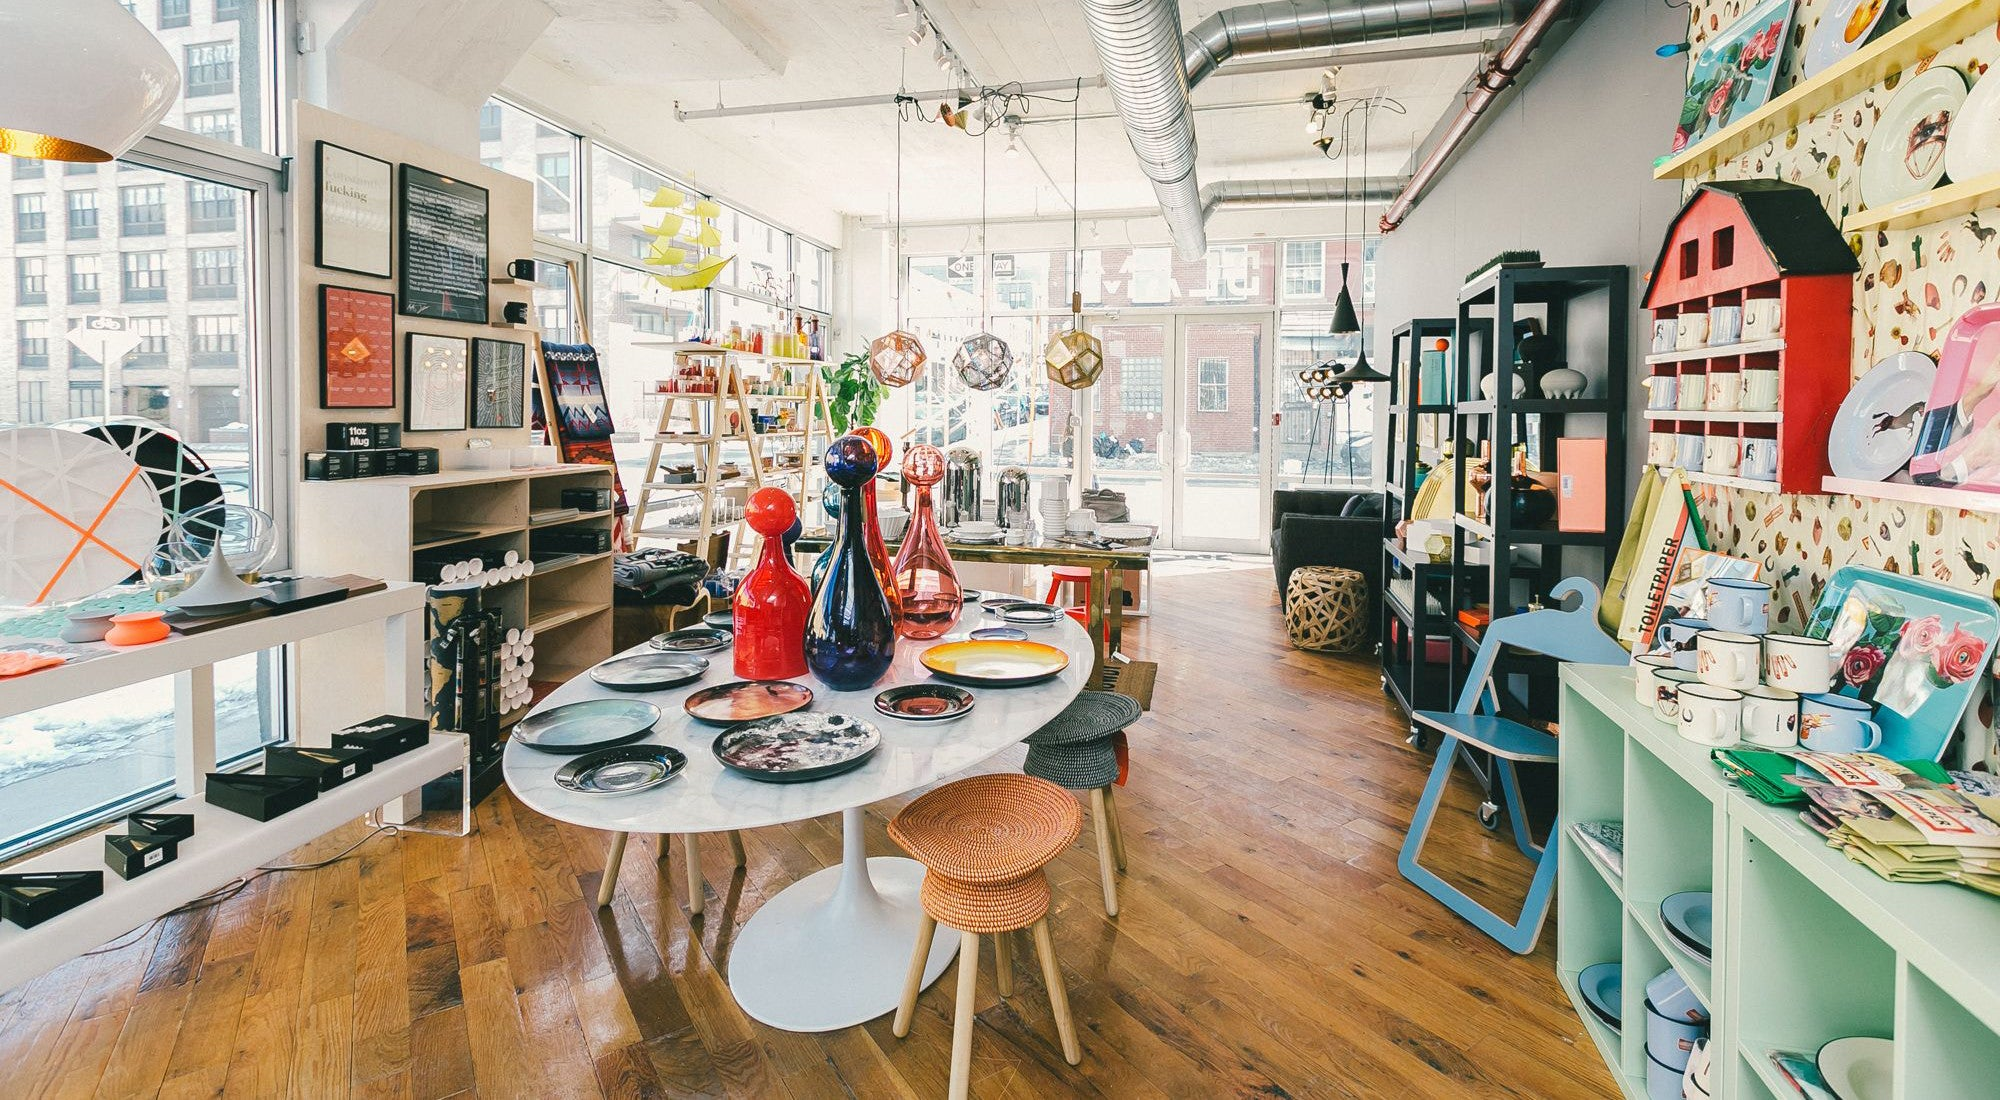 Genial BEAM Named To Racked NYu0027s List Of Best Home And Furniture Stores In NYC!